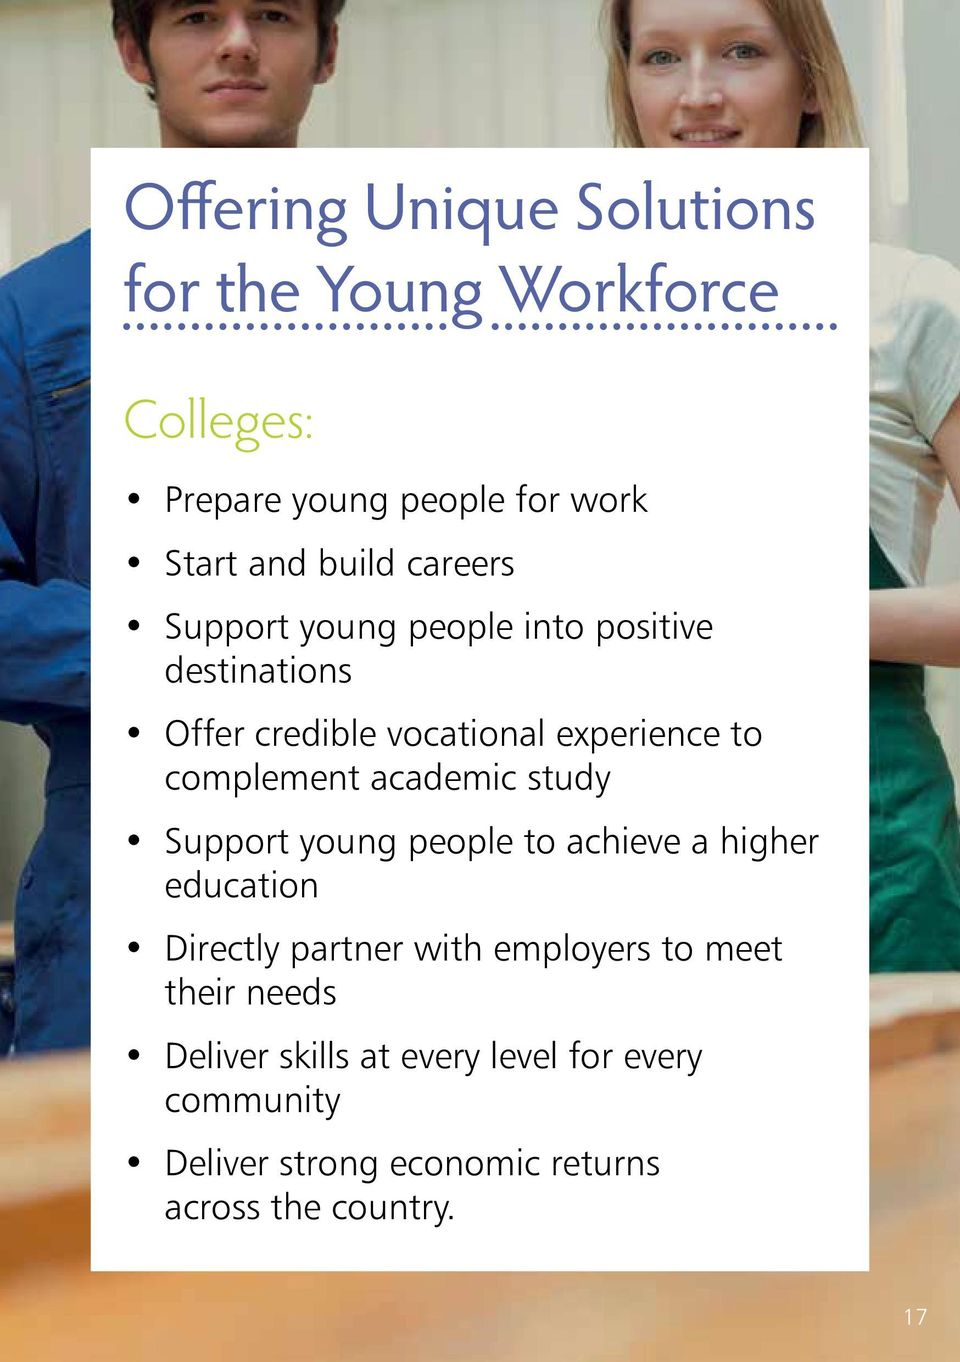 academic study Support young people to achieve a higher education Directly partner with employers to meet